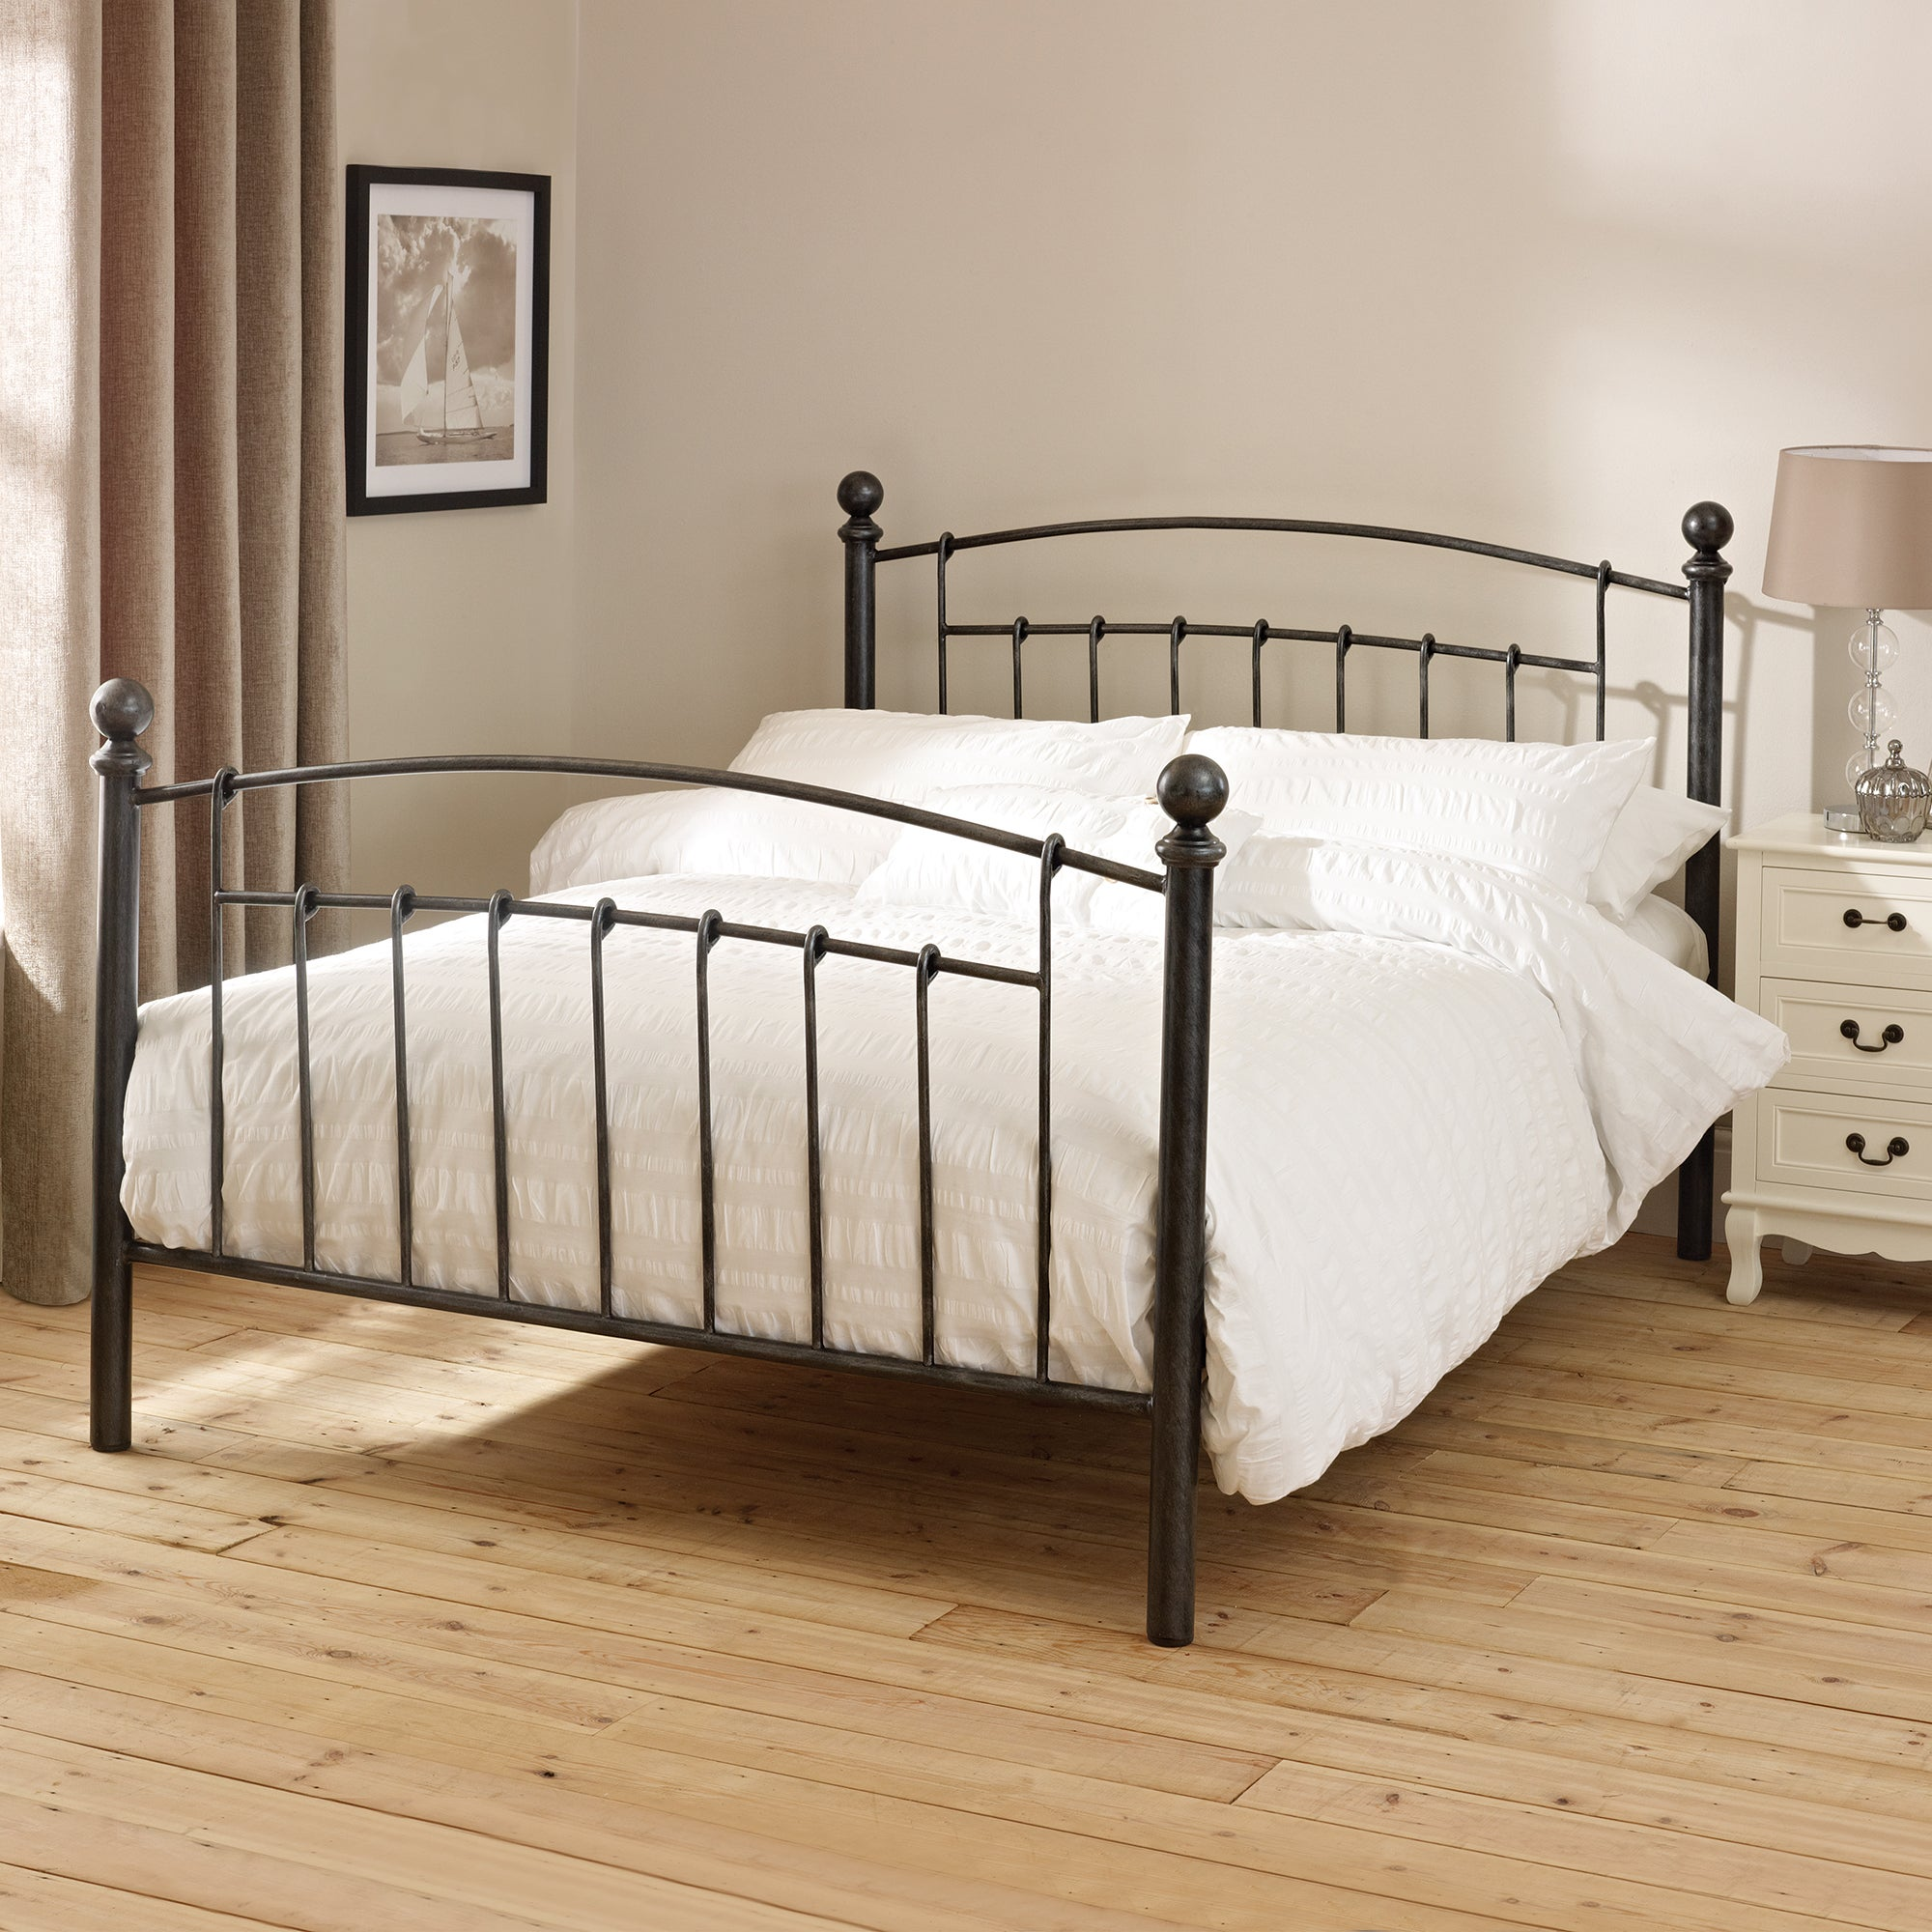 Middleton Black Double Bedstead